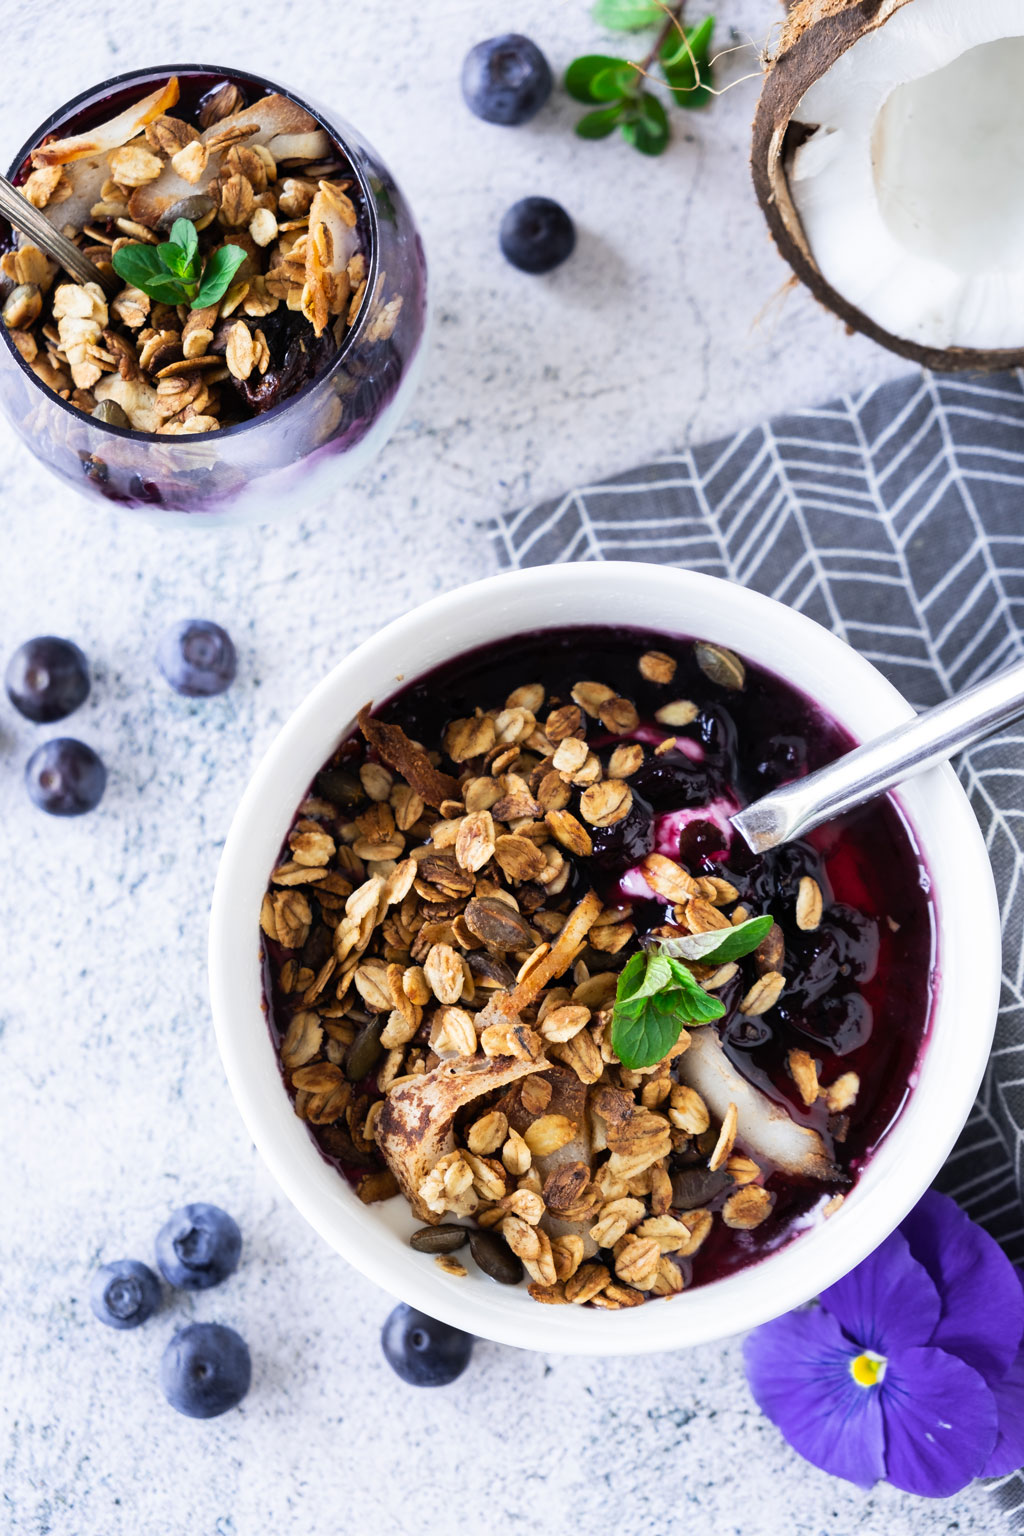 Vanilla yogurt with blueberry compote in bowl.